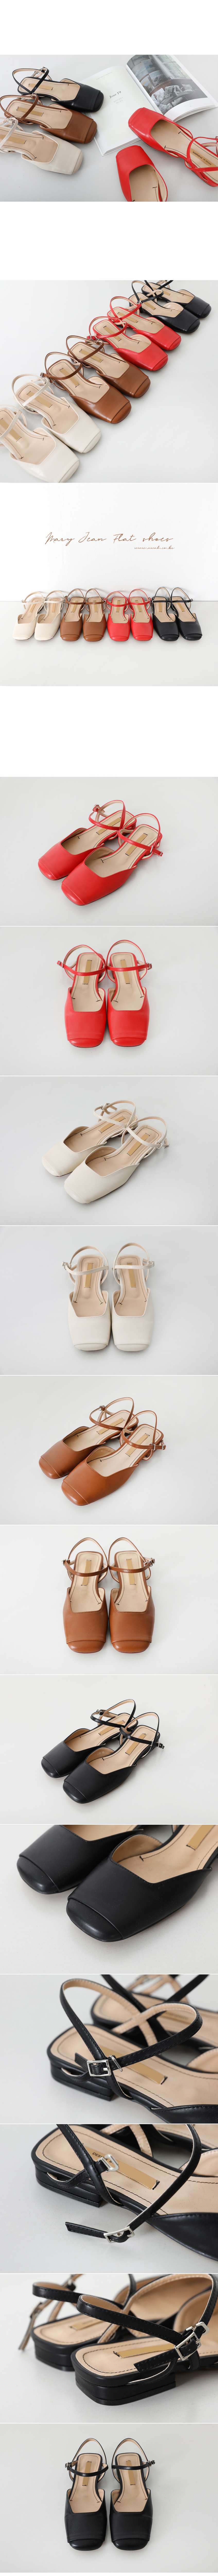 Melome jane shoes